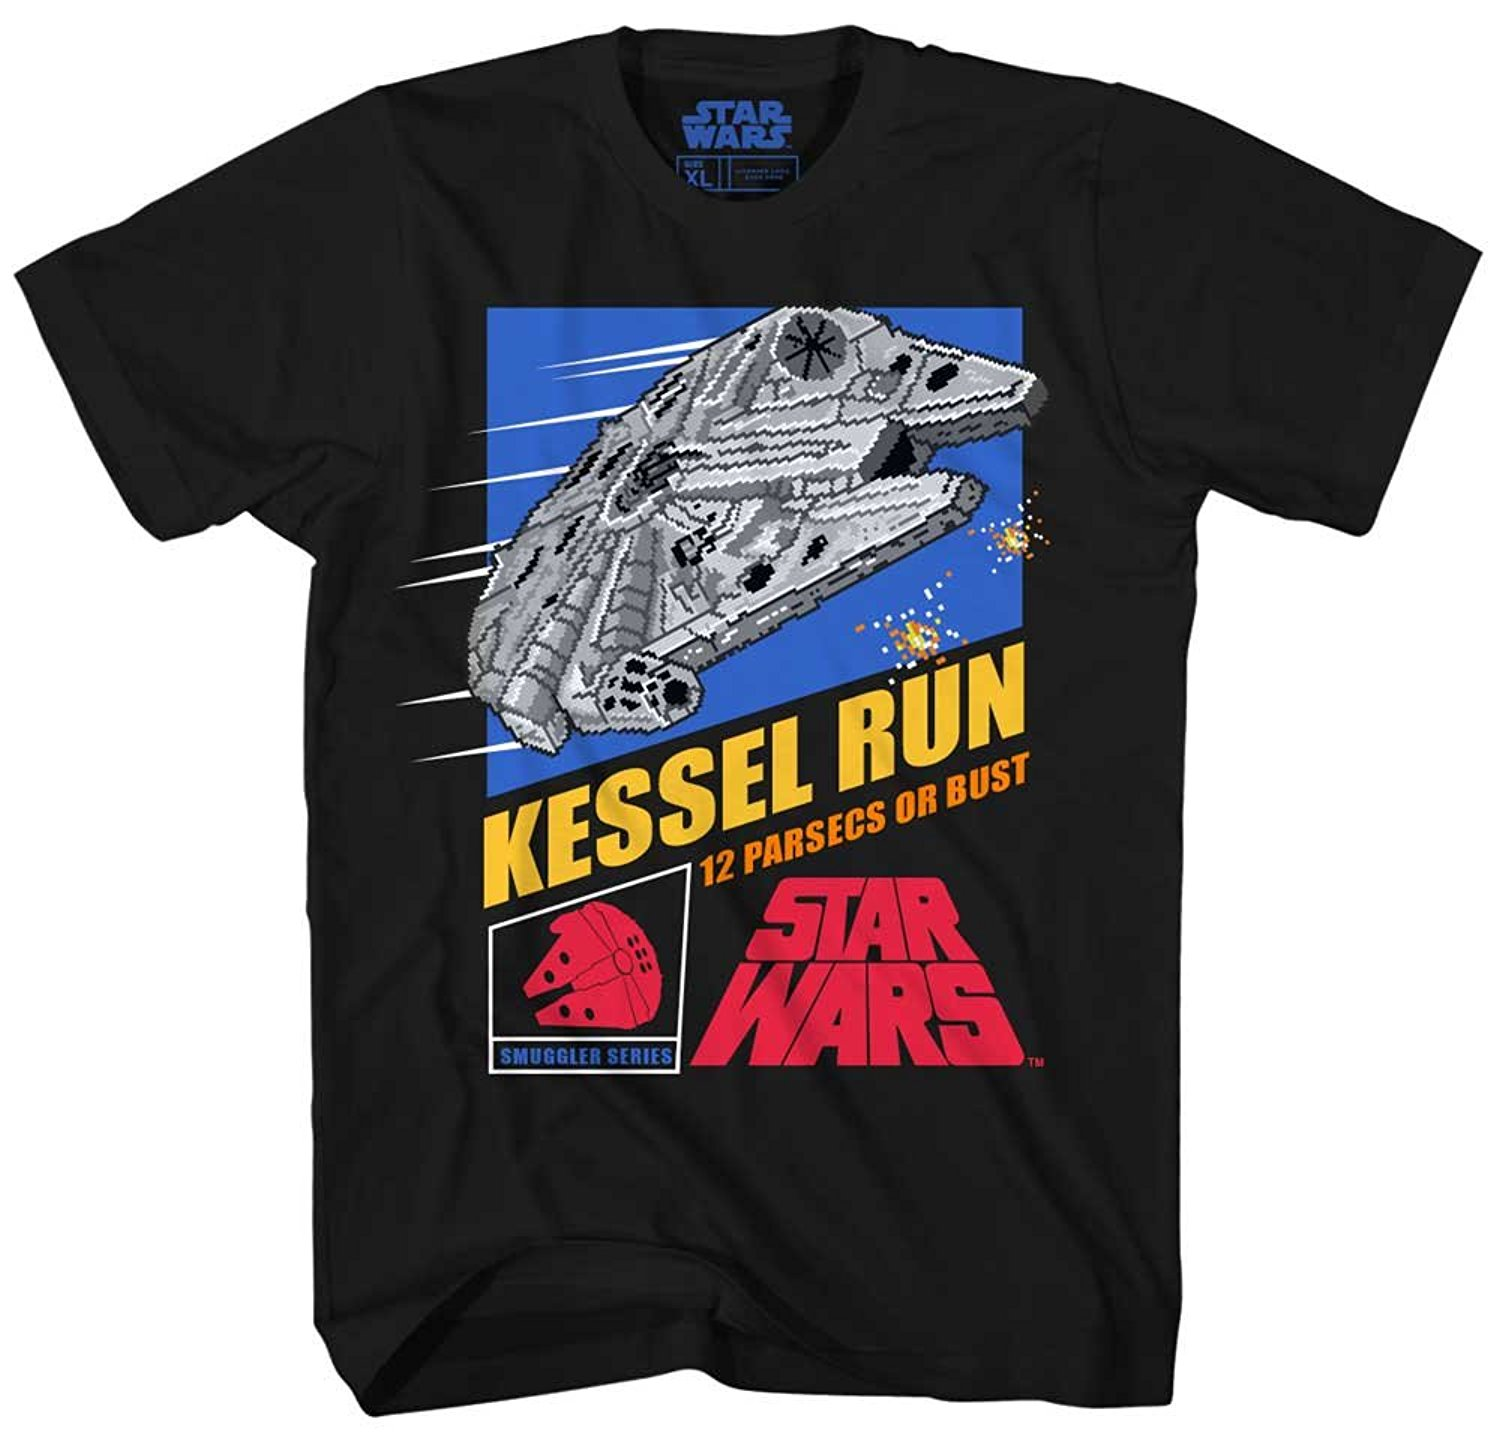 Star Wars Millennium Falcon Han Solo Chewbacca Chewie Kessel Runer Video Game Funny T Shirt Pun Mens Adult Graphic Tee T-shirt